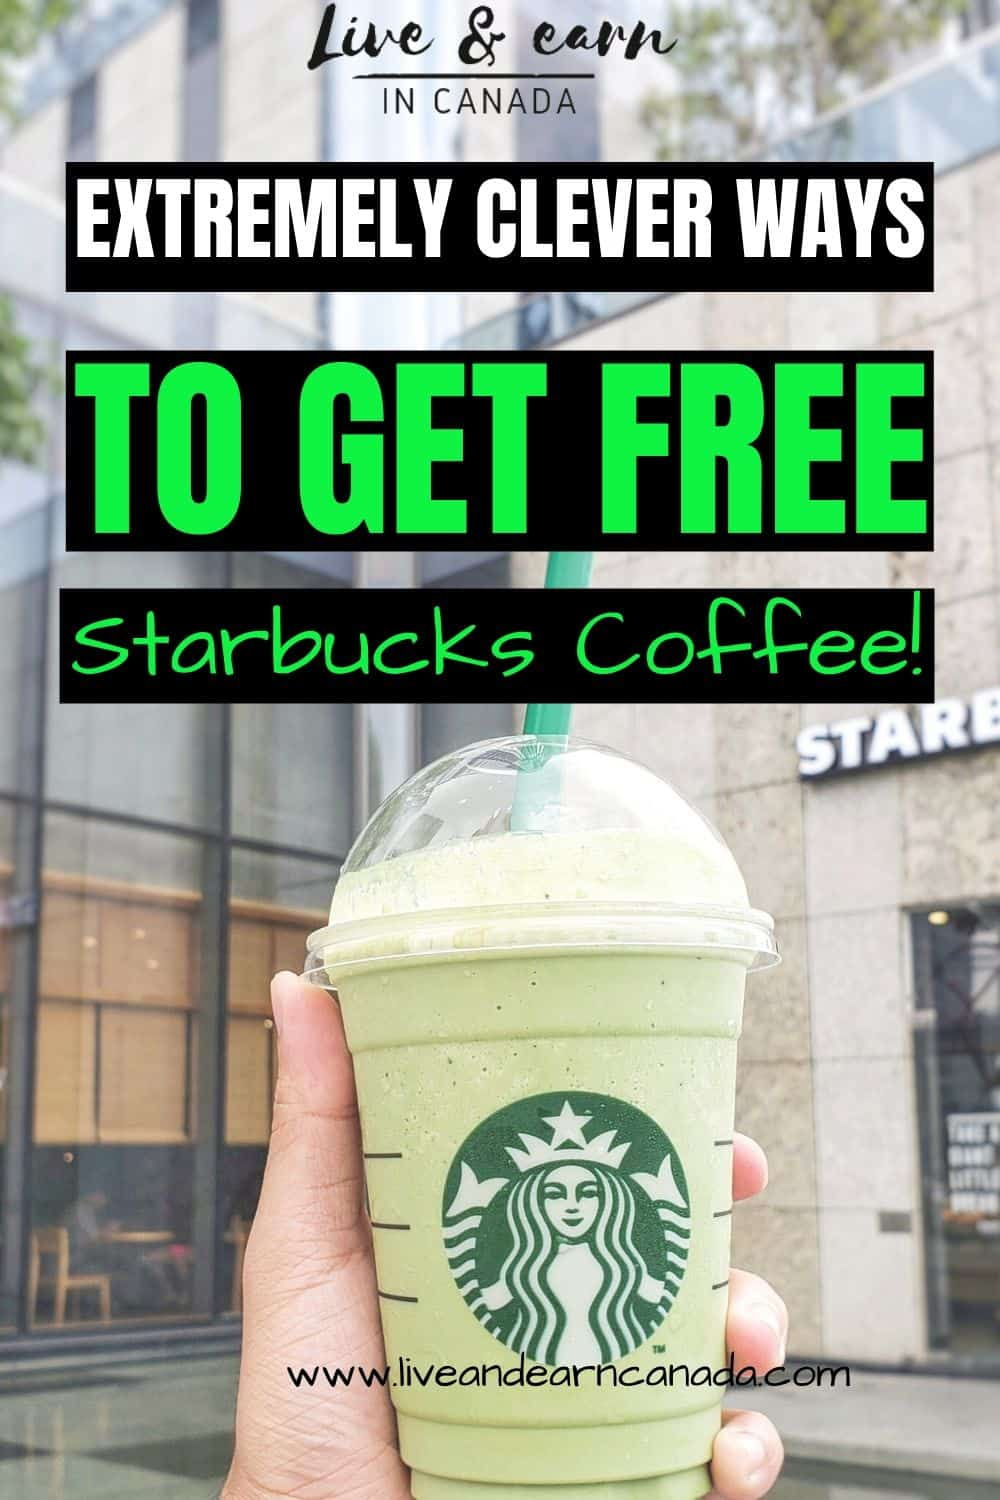 Here is how to get free Starbucks coffee if you want to save money. This is a Starbucks hack for getting free coffee every time #freecoffee #starbuckscoffee #starbucks.